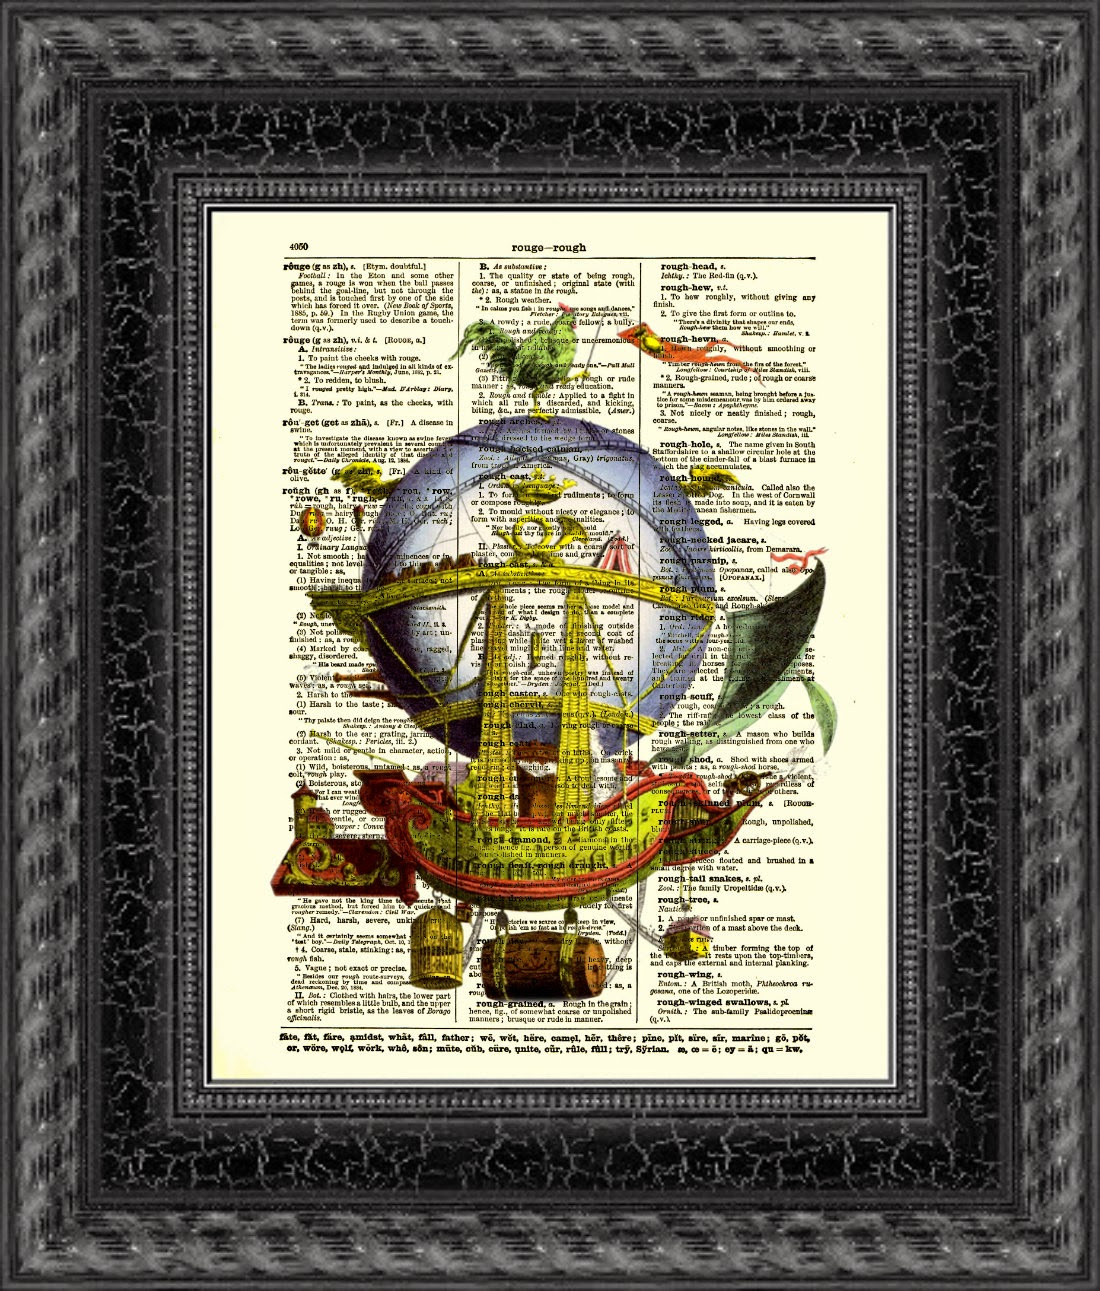 17-Upcycled-Hot-Air-Balloon-Belle-Old-Books-and-Dictionaries-in-Re-Imagination-Prints-www-designstack-co